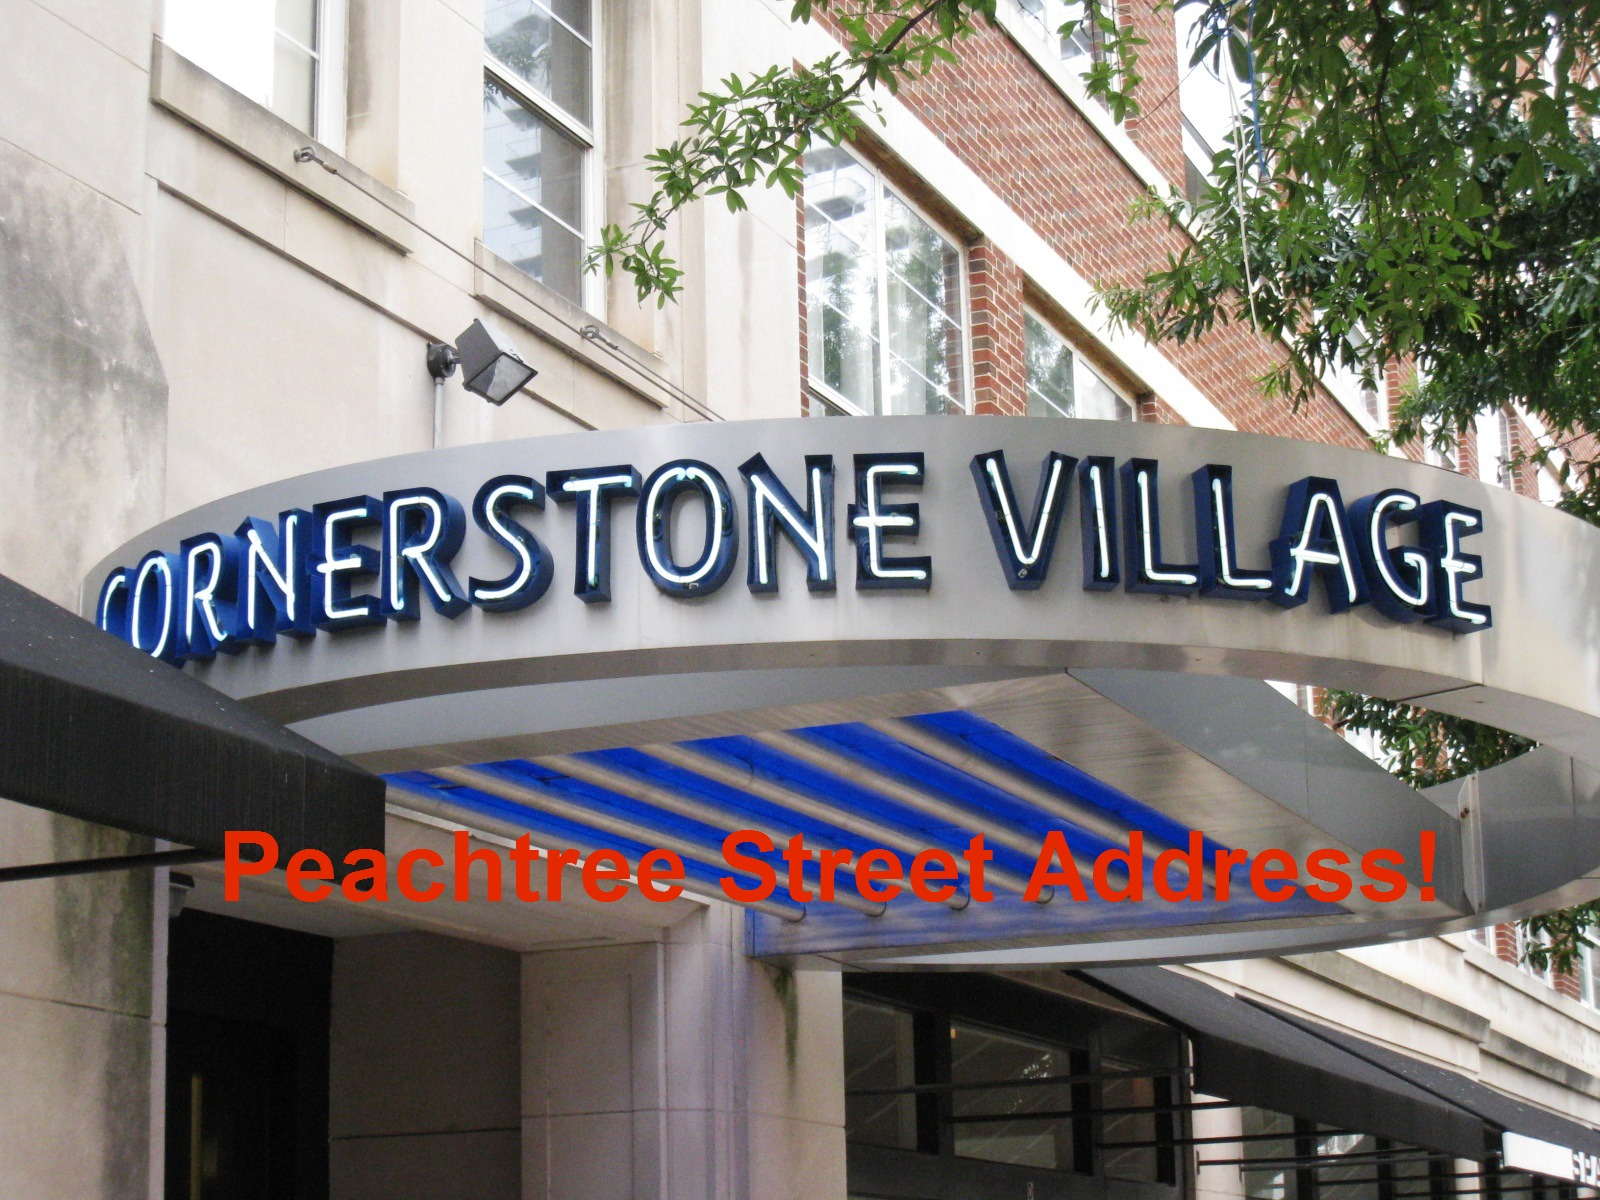 Cornerstone Village Building Name